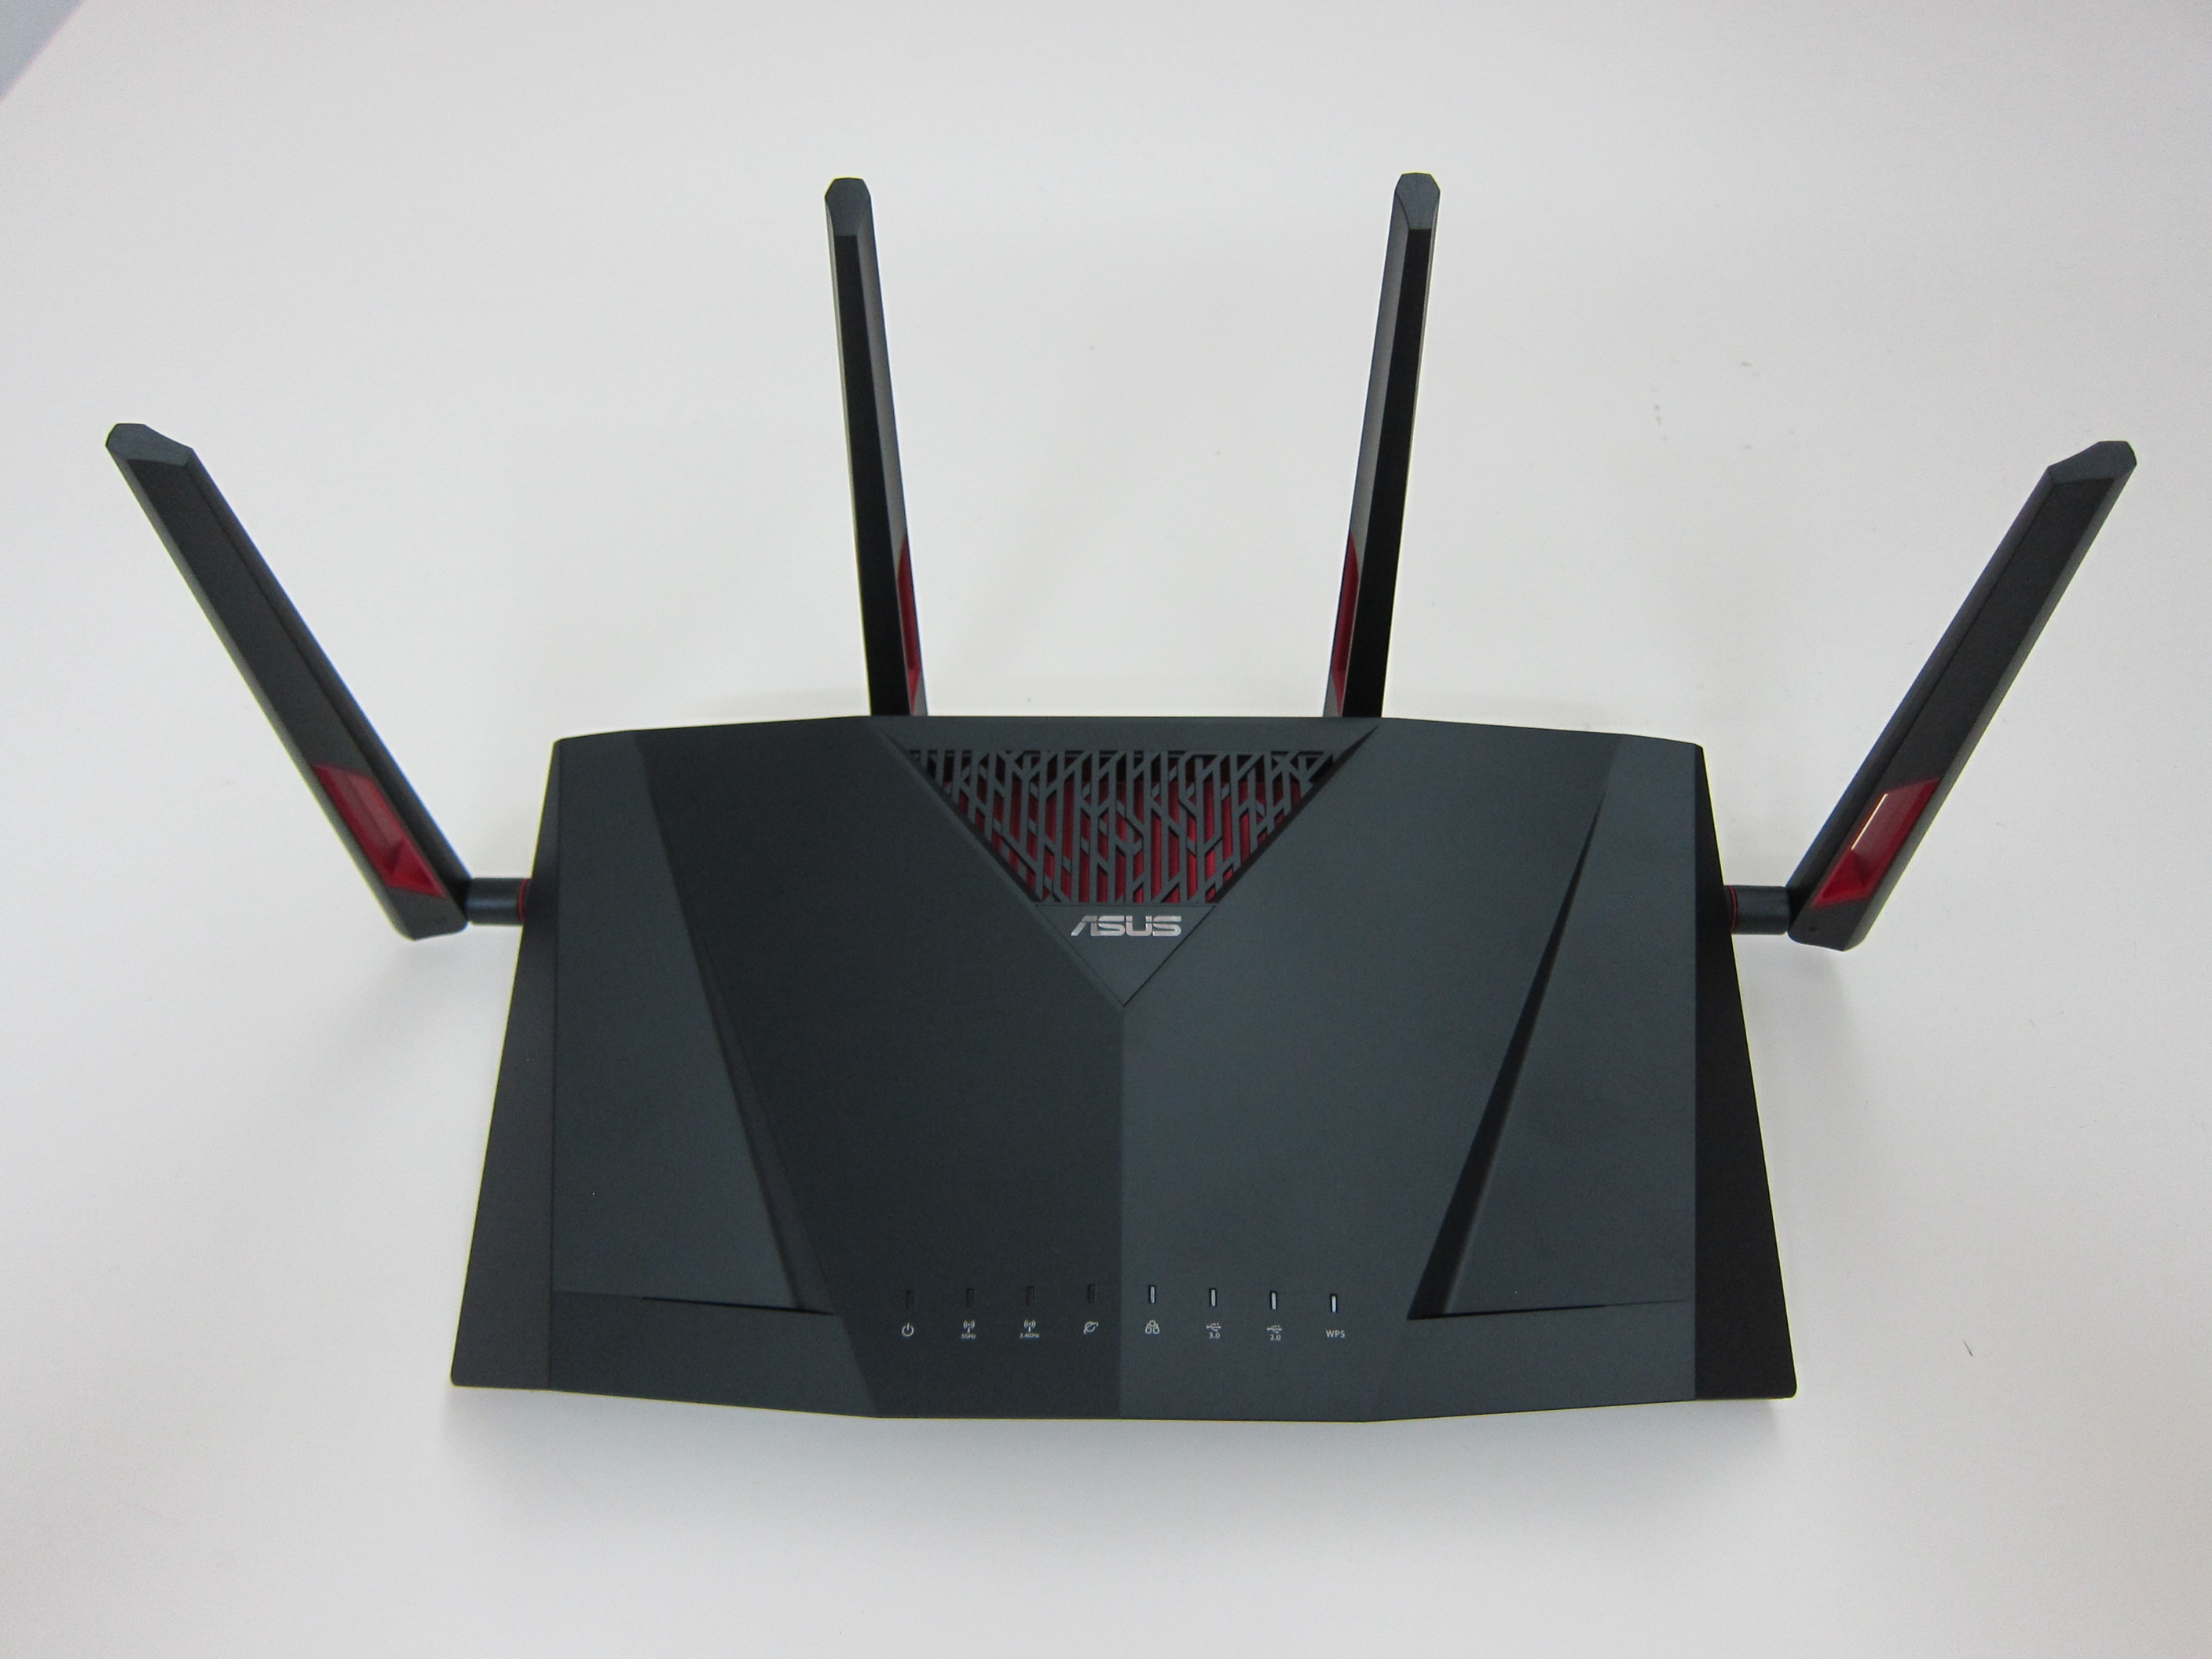 ASUS RT-AC88U Router Review « Blog | lesterchan.net